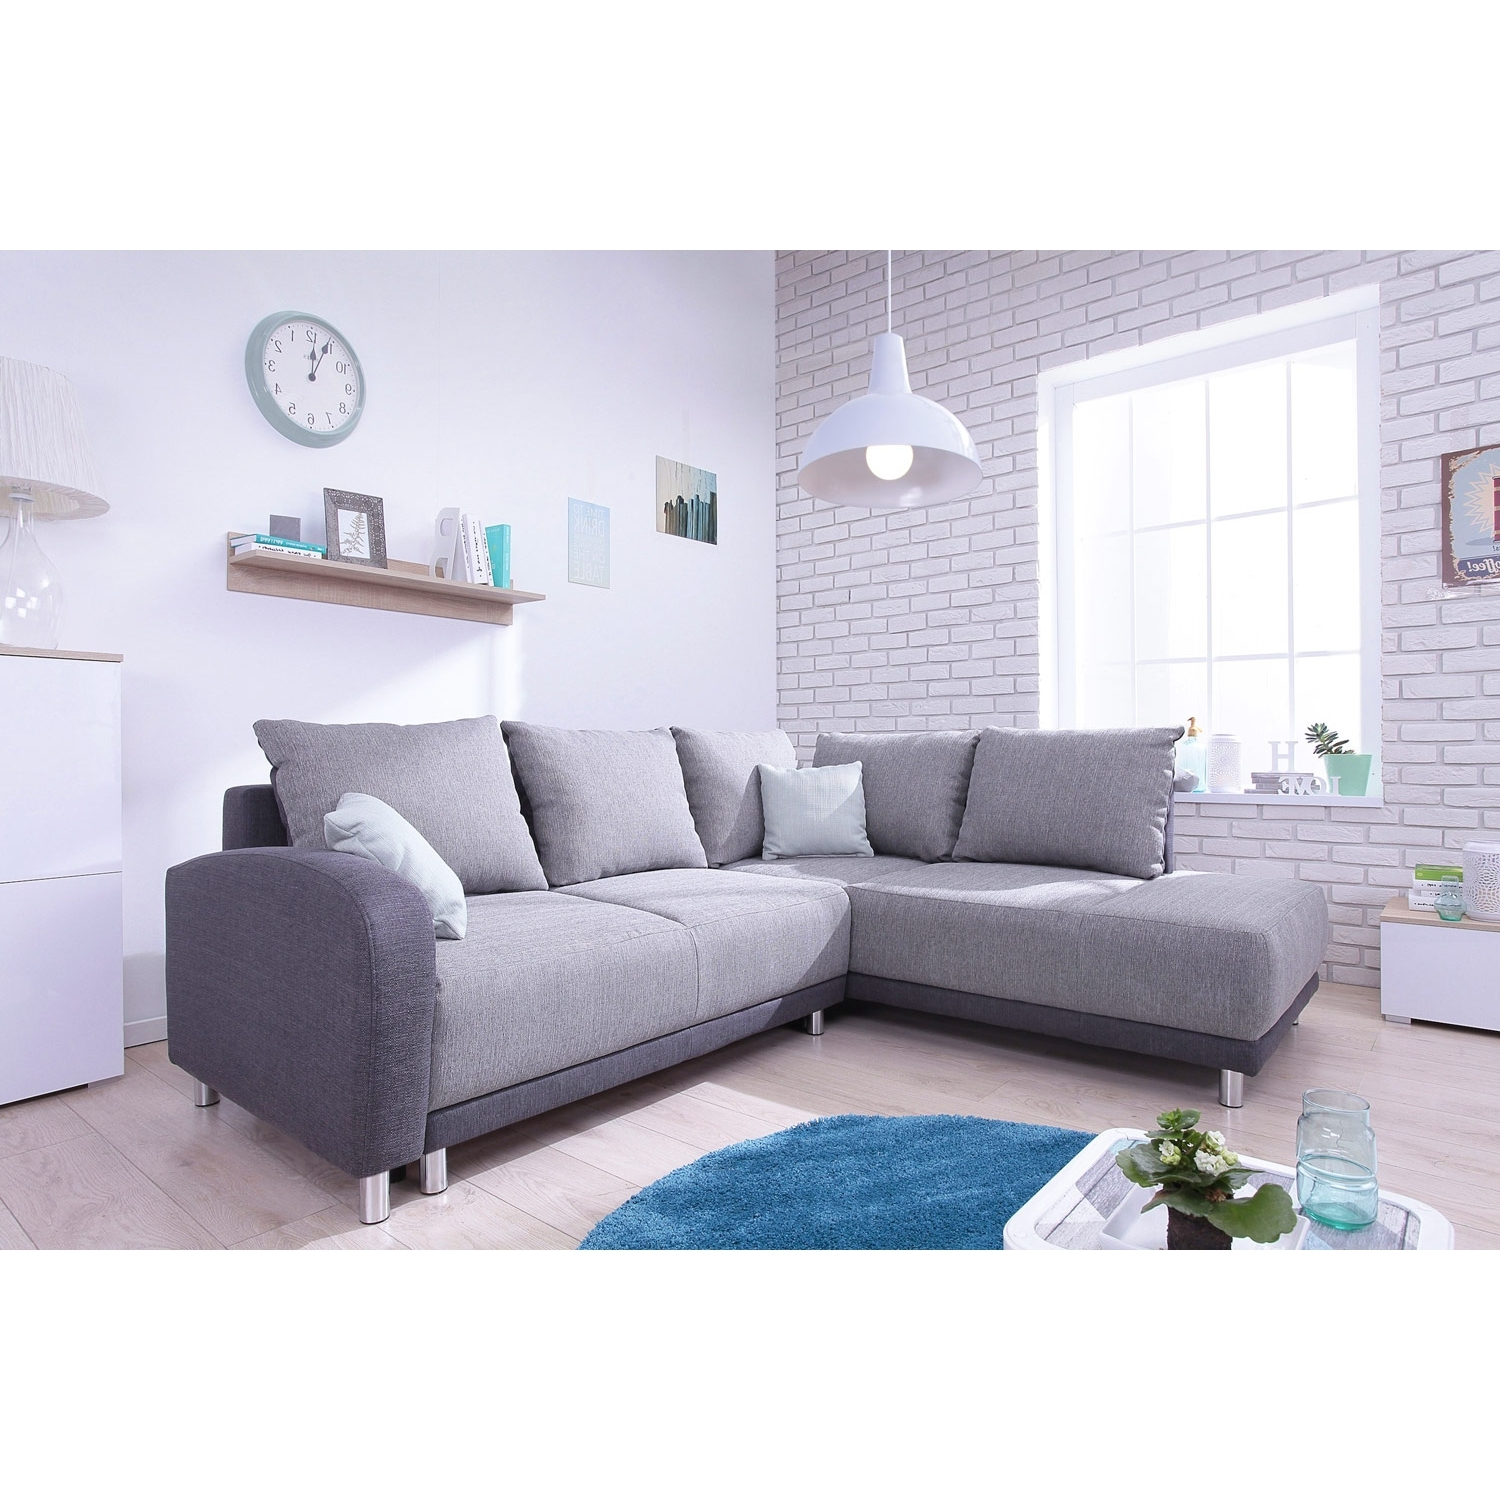 bobochic canap convertible scandinave minty grand angle droit tissu gris clair gris. Black Bedroom Furniture Sets. Home Design Ideas